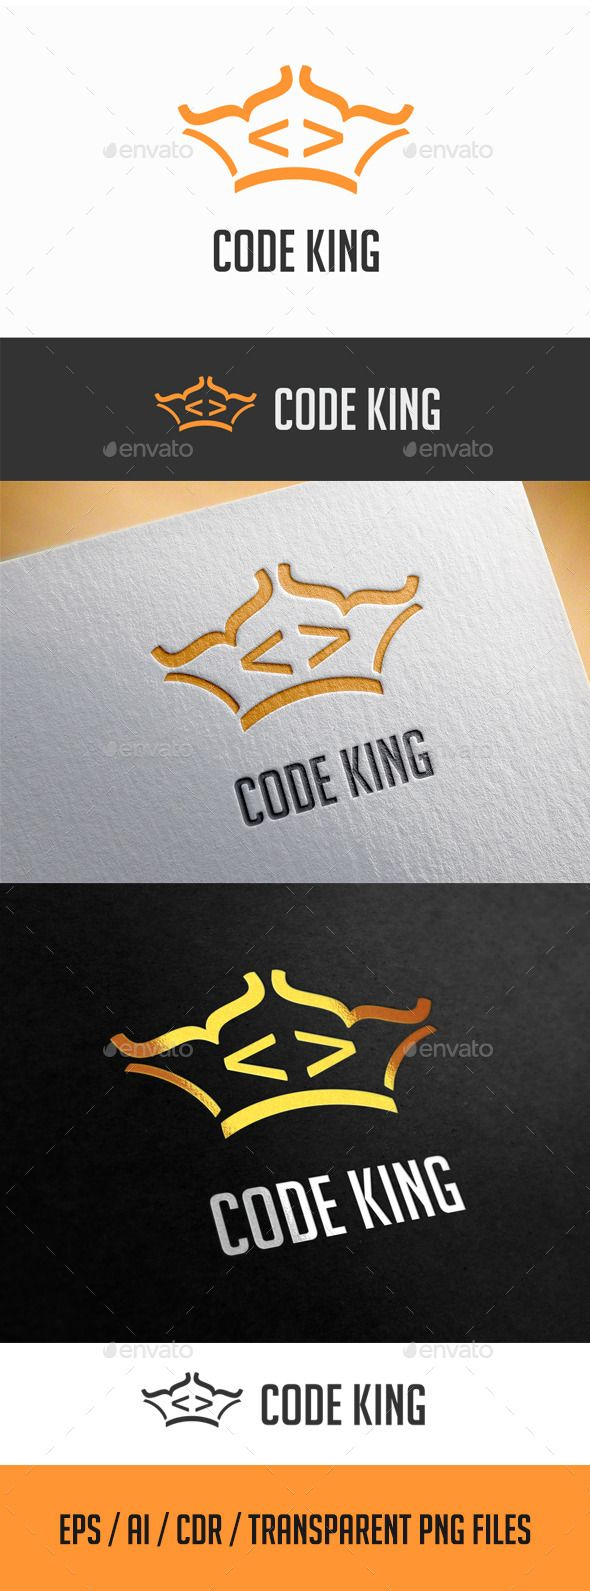 Code King Logo Template Logo Templates Logo Design Template Logos